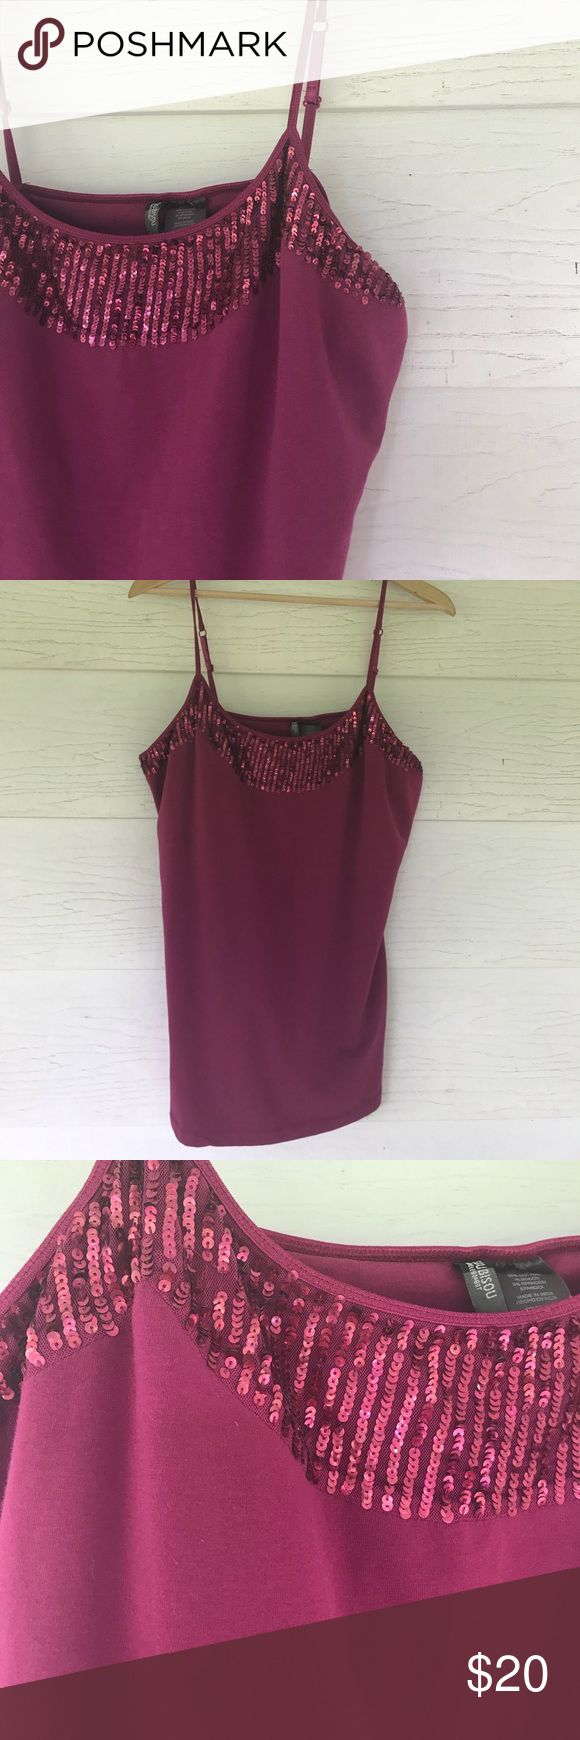 Raspberry tank NWT Beautiful sequin detail at neckline. New with tags. Size xl. Bisou Bisou Tops Tank Tops